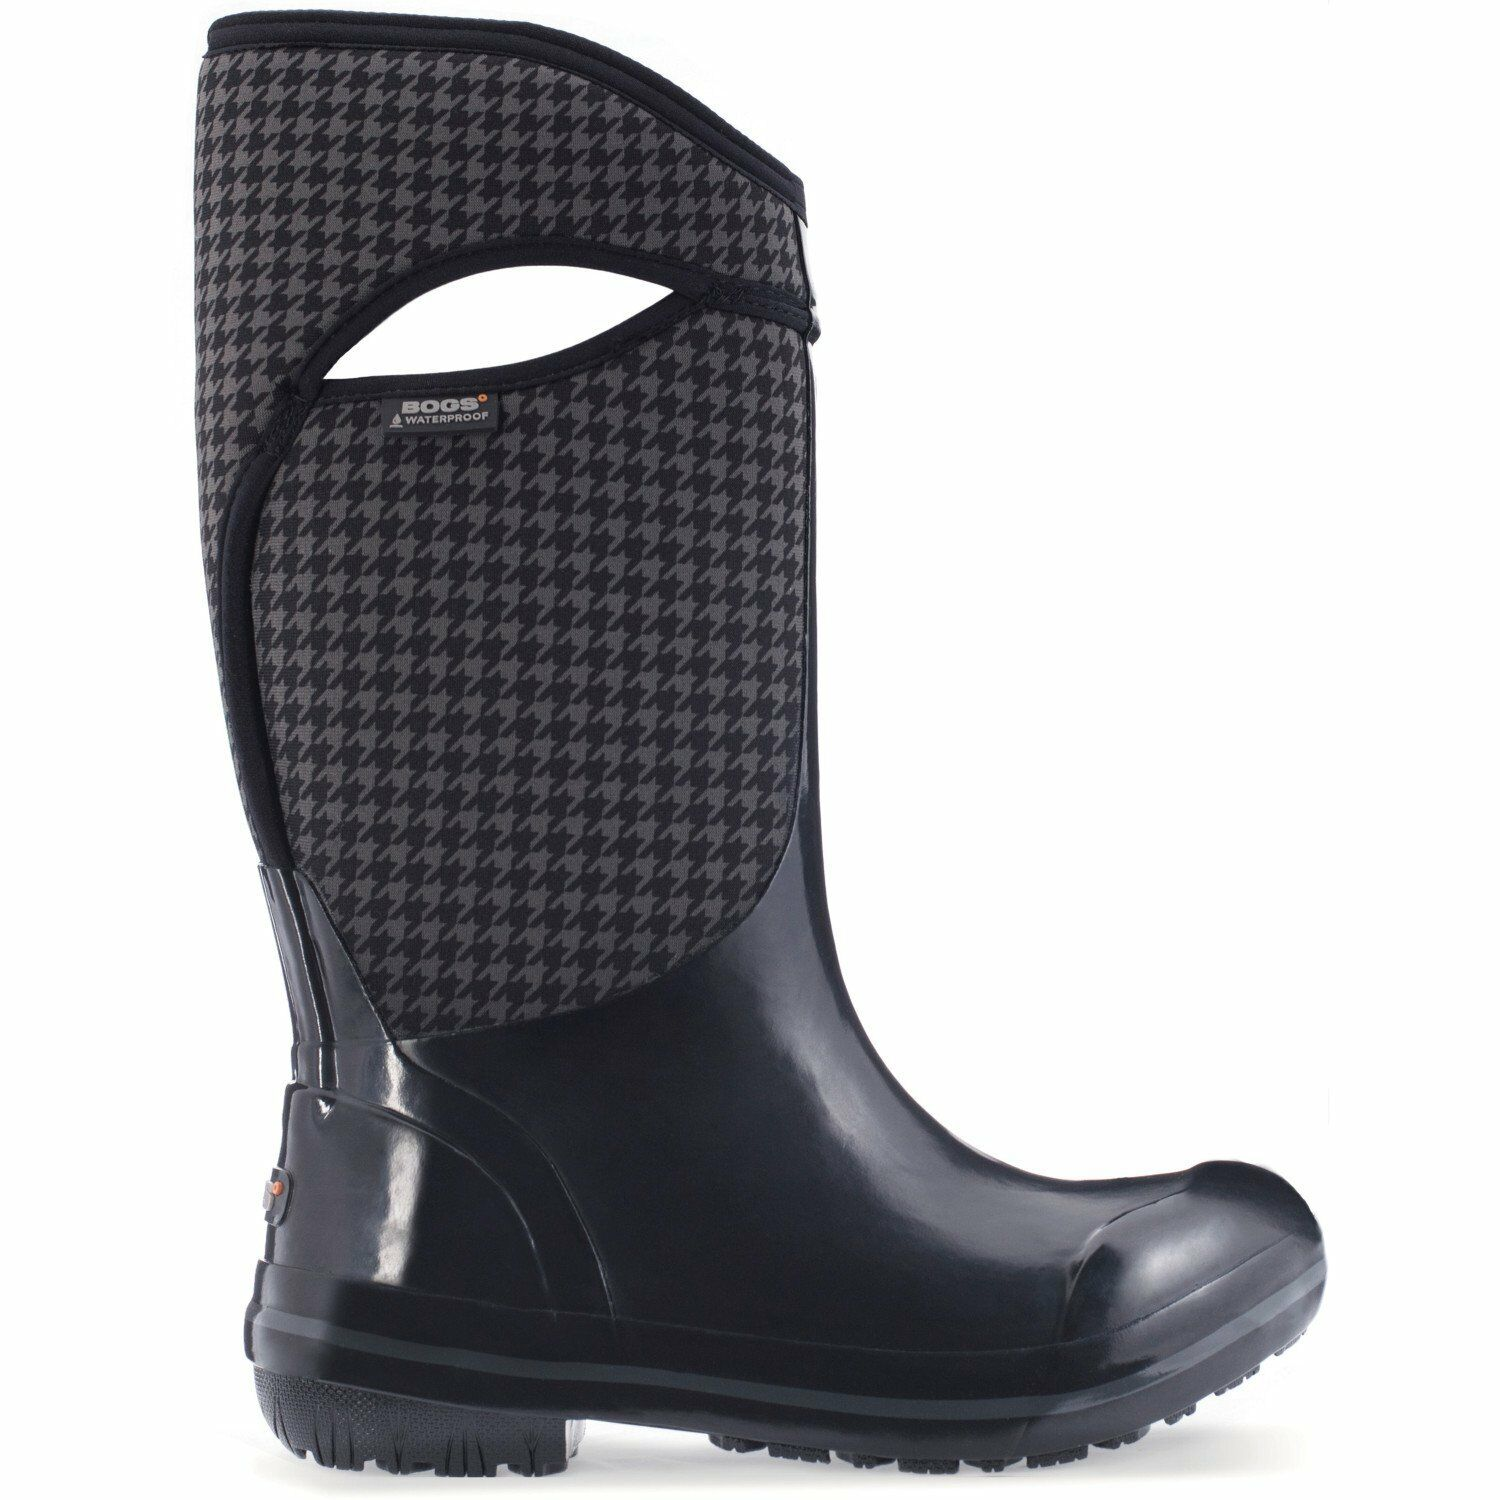 Bogs Plimsoll Houndstooth Tall Womens Boots Wellies - - - Black Multi All Sizes 76531c